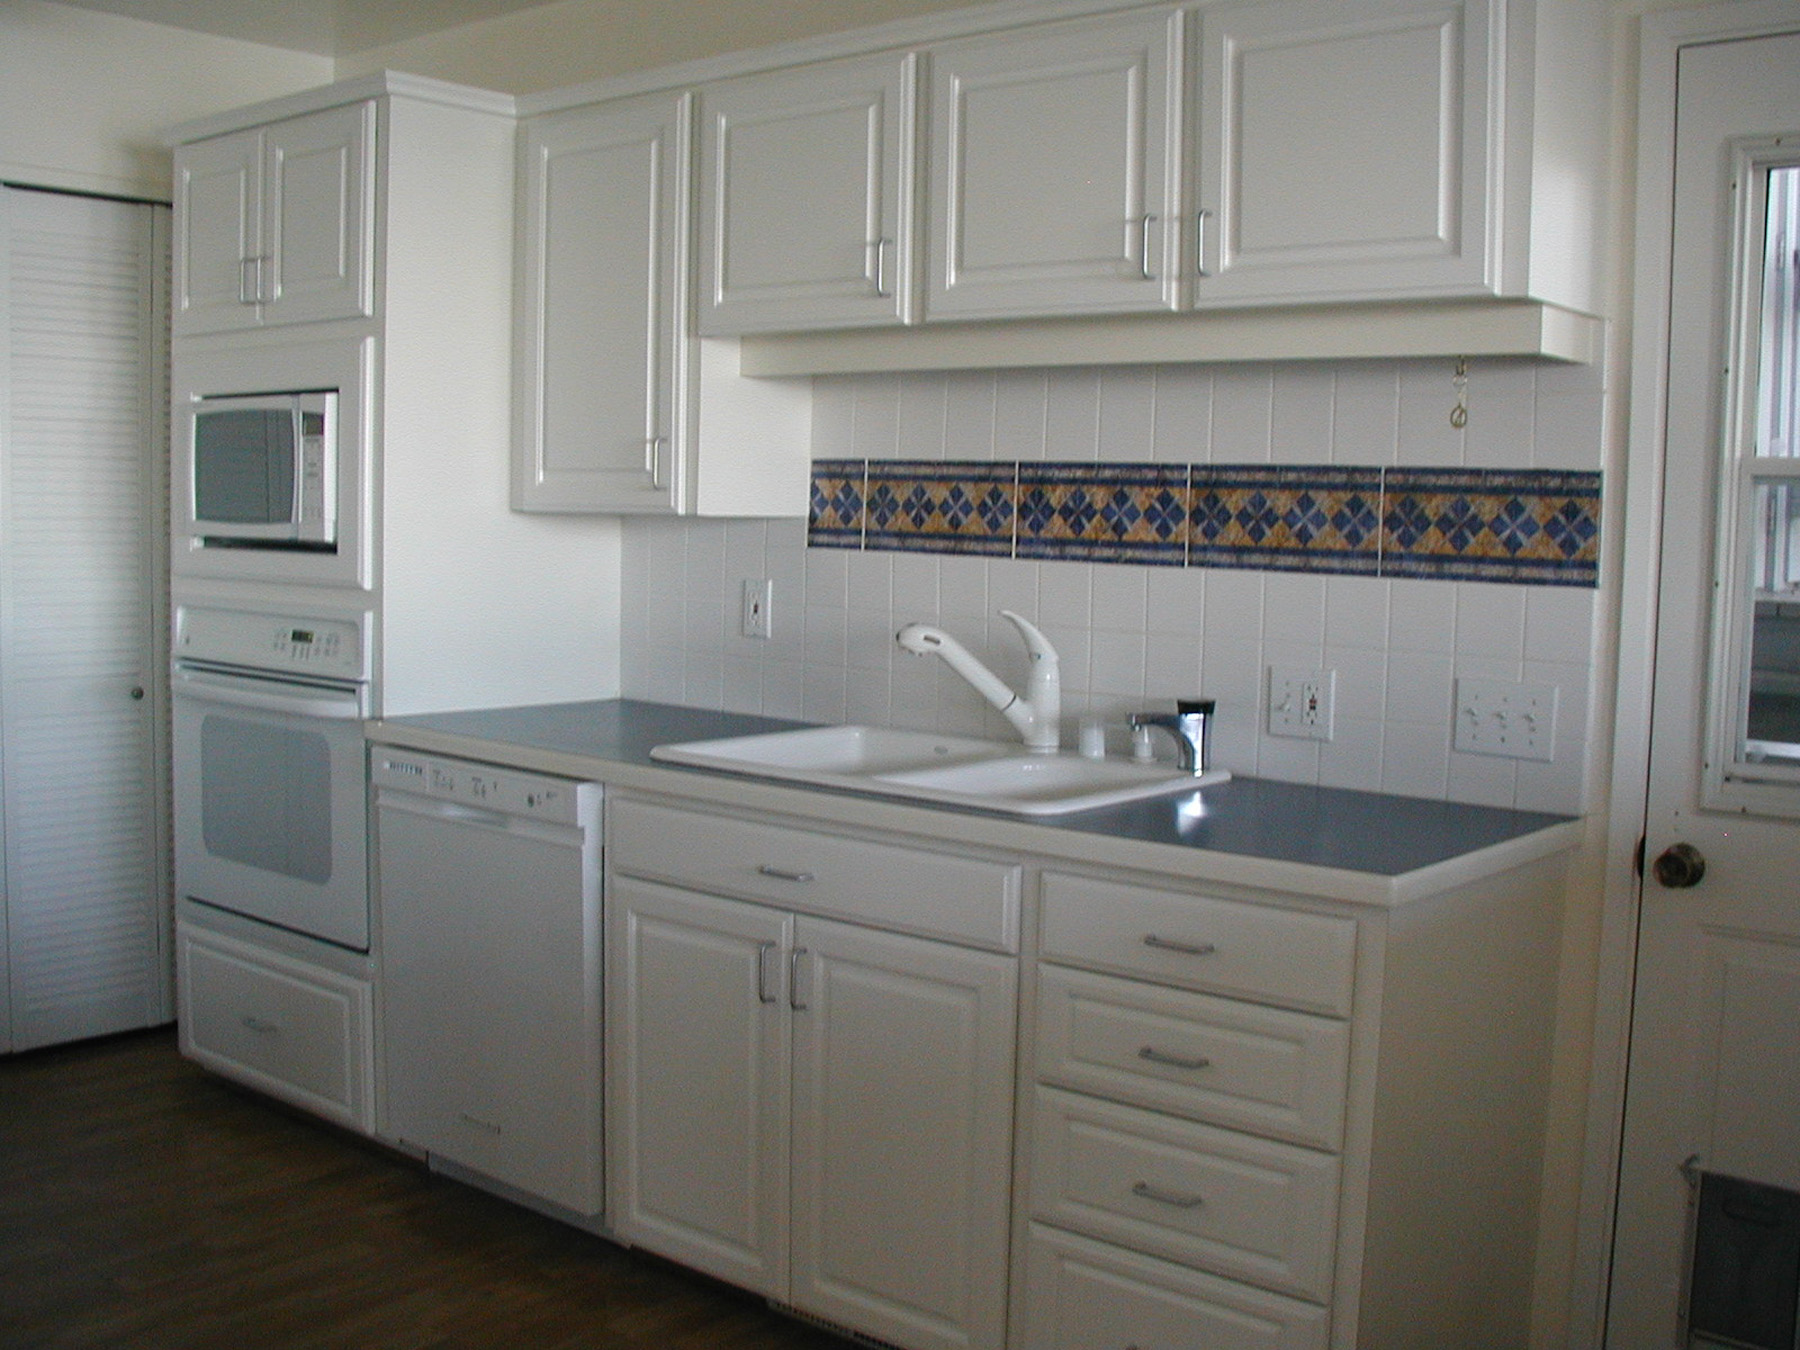 Include Decorative Tile In Your Kitchen Or Bath Design Notes From The Field